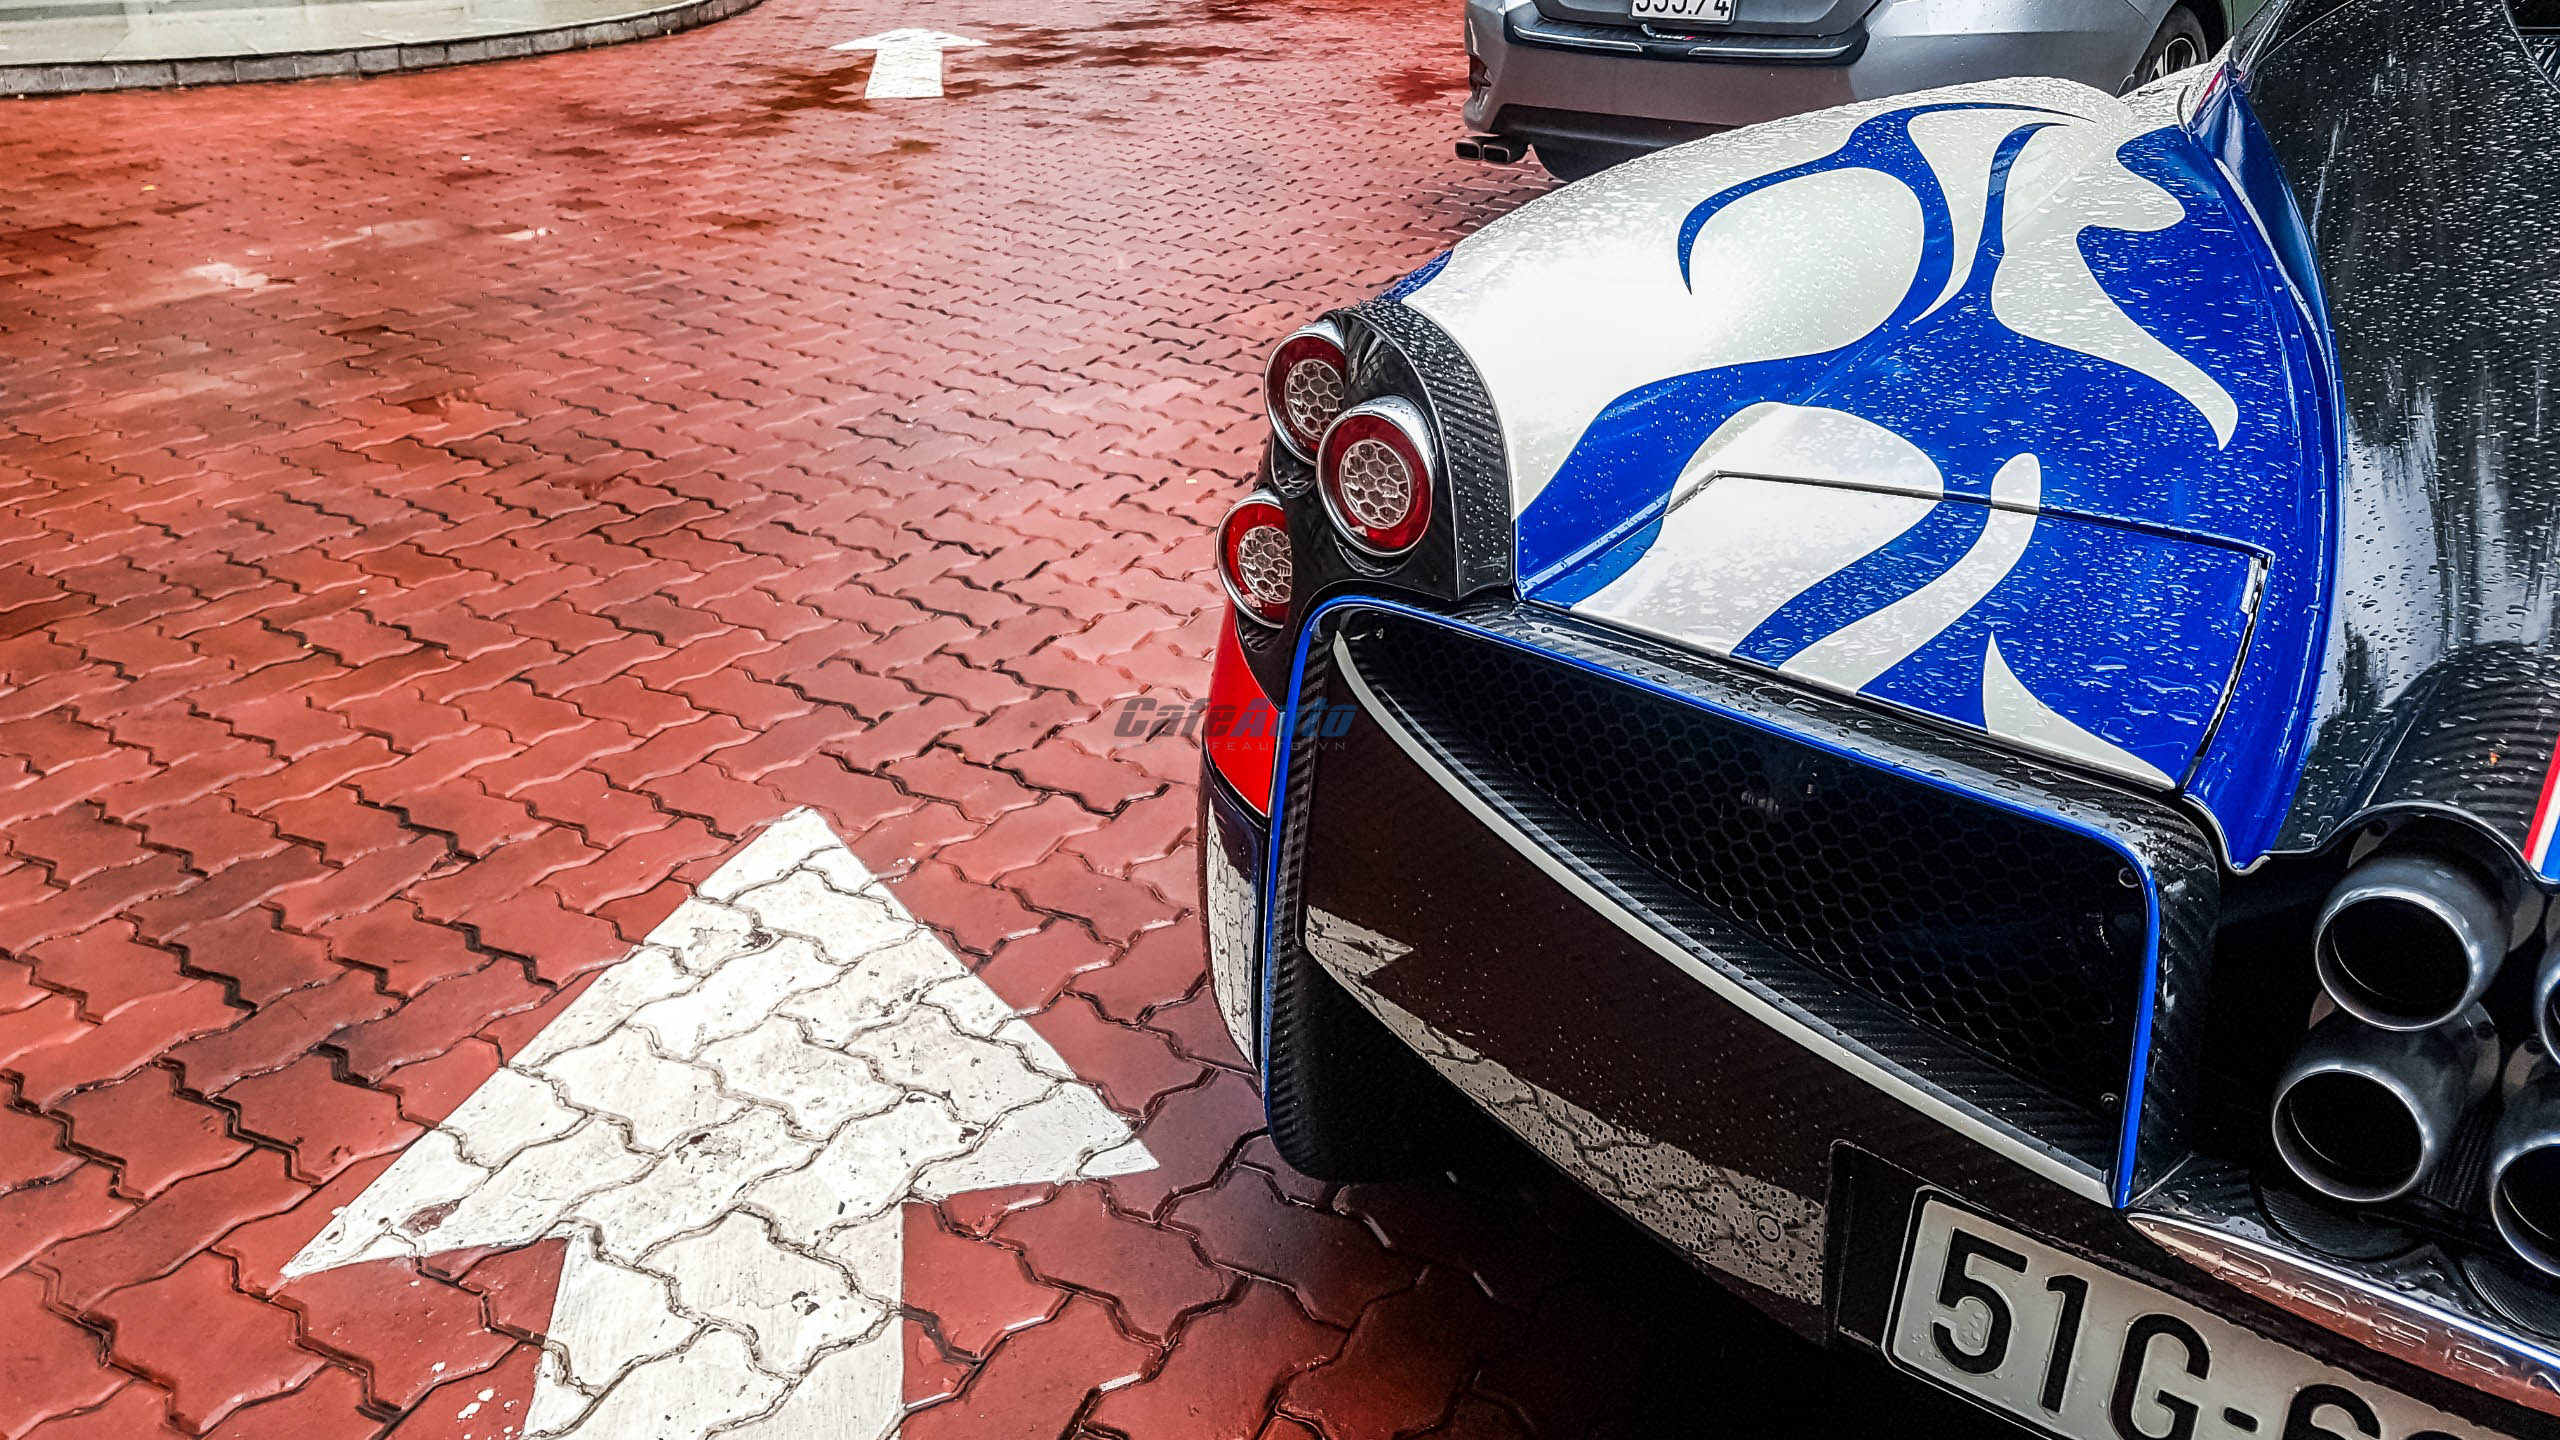 paganihuayra-cafeautovn-17